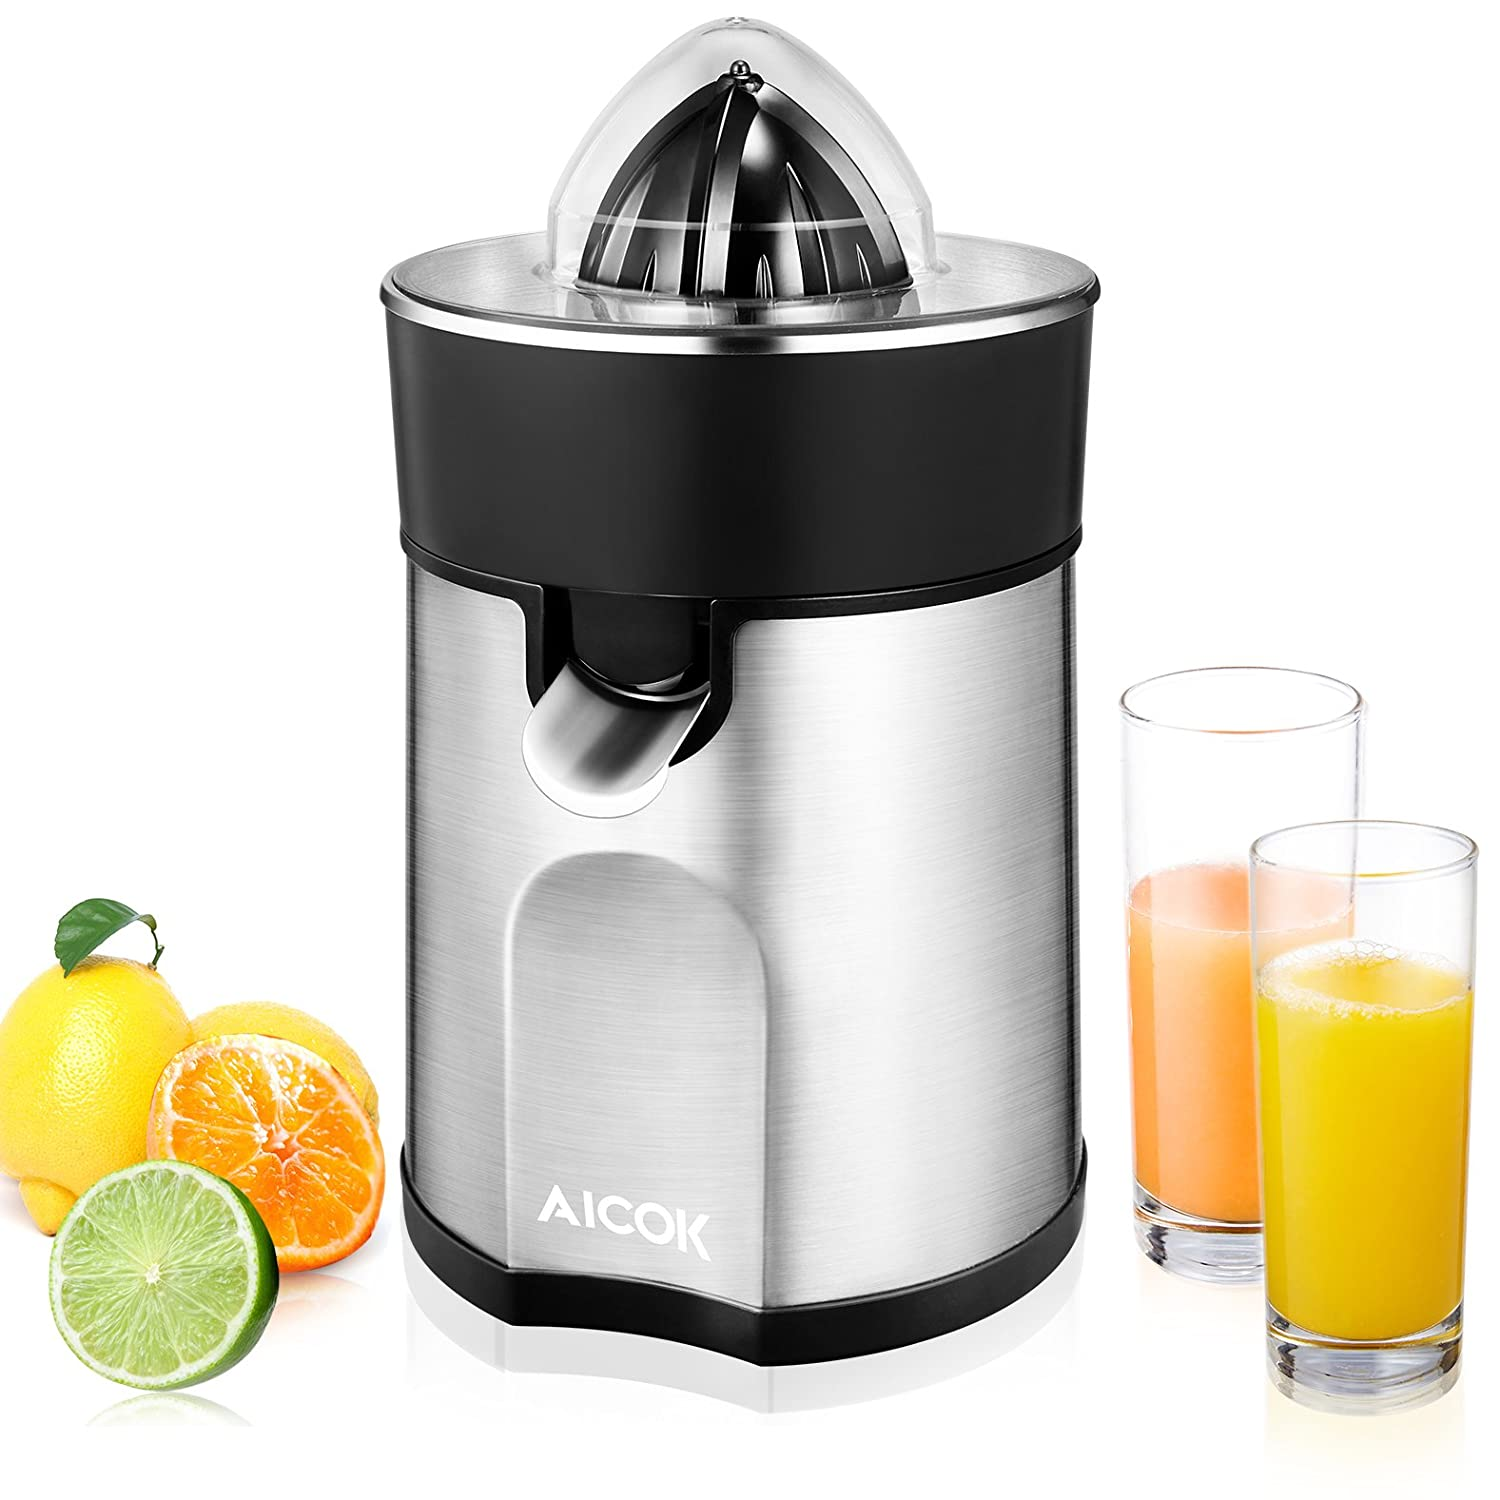 Juicer Aicok Citrus Juicer Electric Citrus Fruit Juicer with 2 Sized Juicing Cones Direct Anti-Drip System, 85W, Steel Filter for Orange Juice, Kiwi, Silver Stainless Steel Body